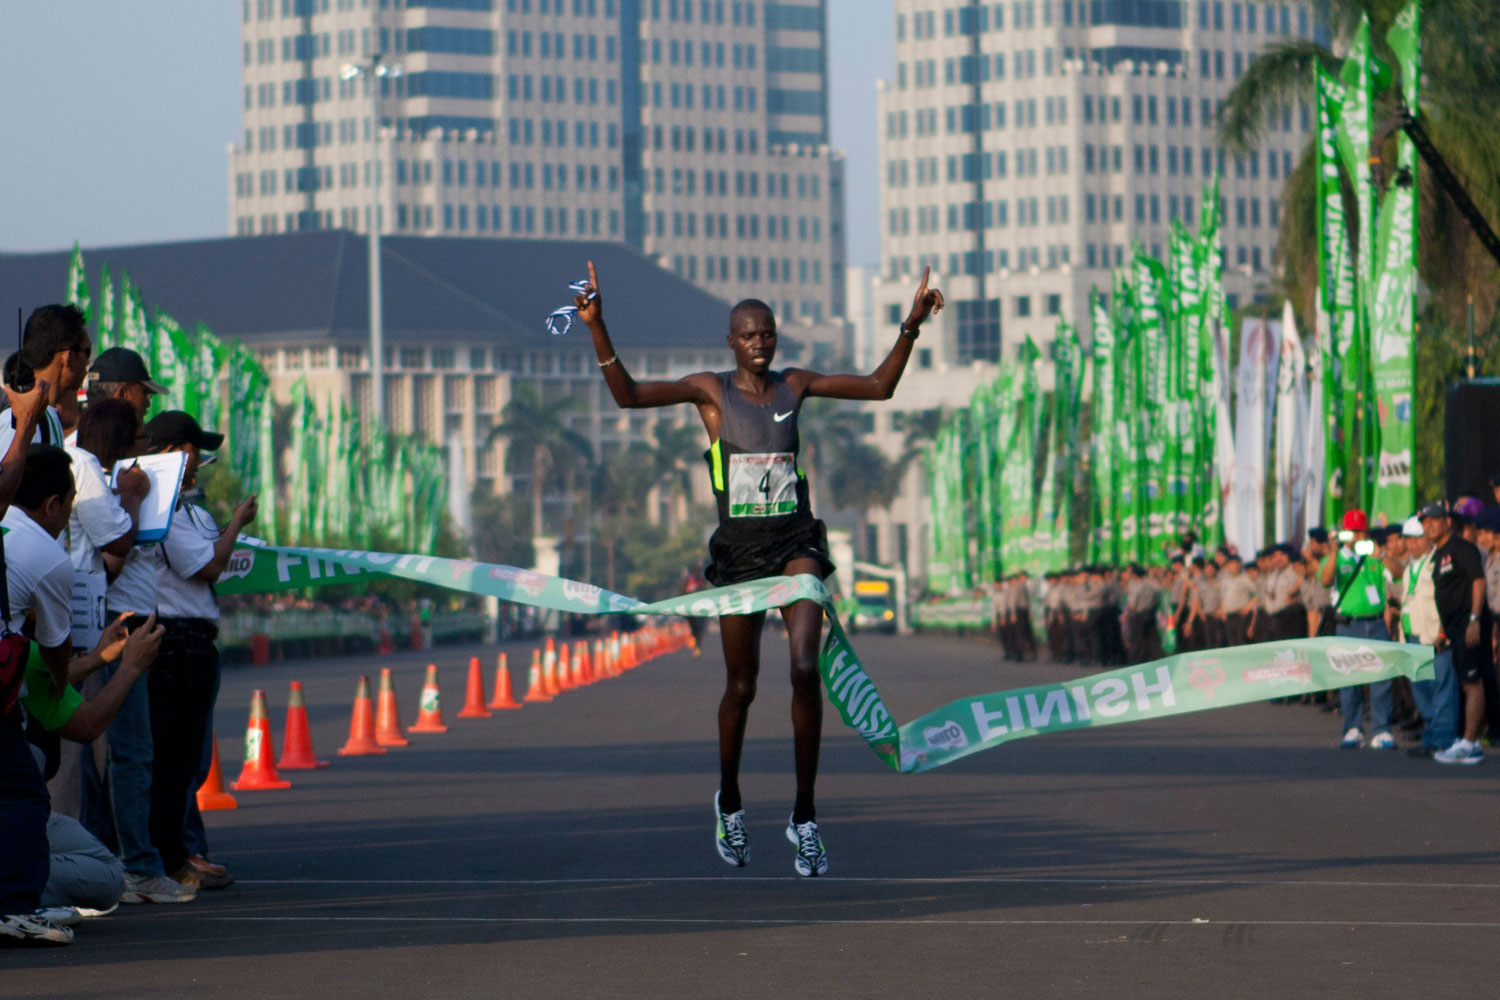 Silas Kipruto crosses the finish line to win the 2012 Jakarta International 10K marathon in May 2012.